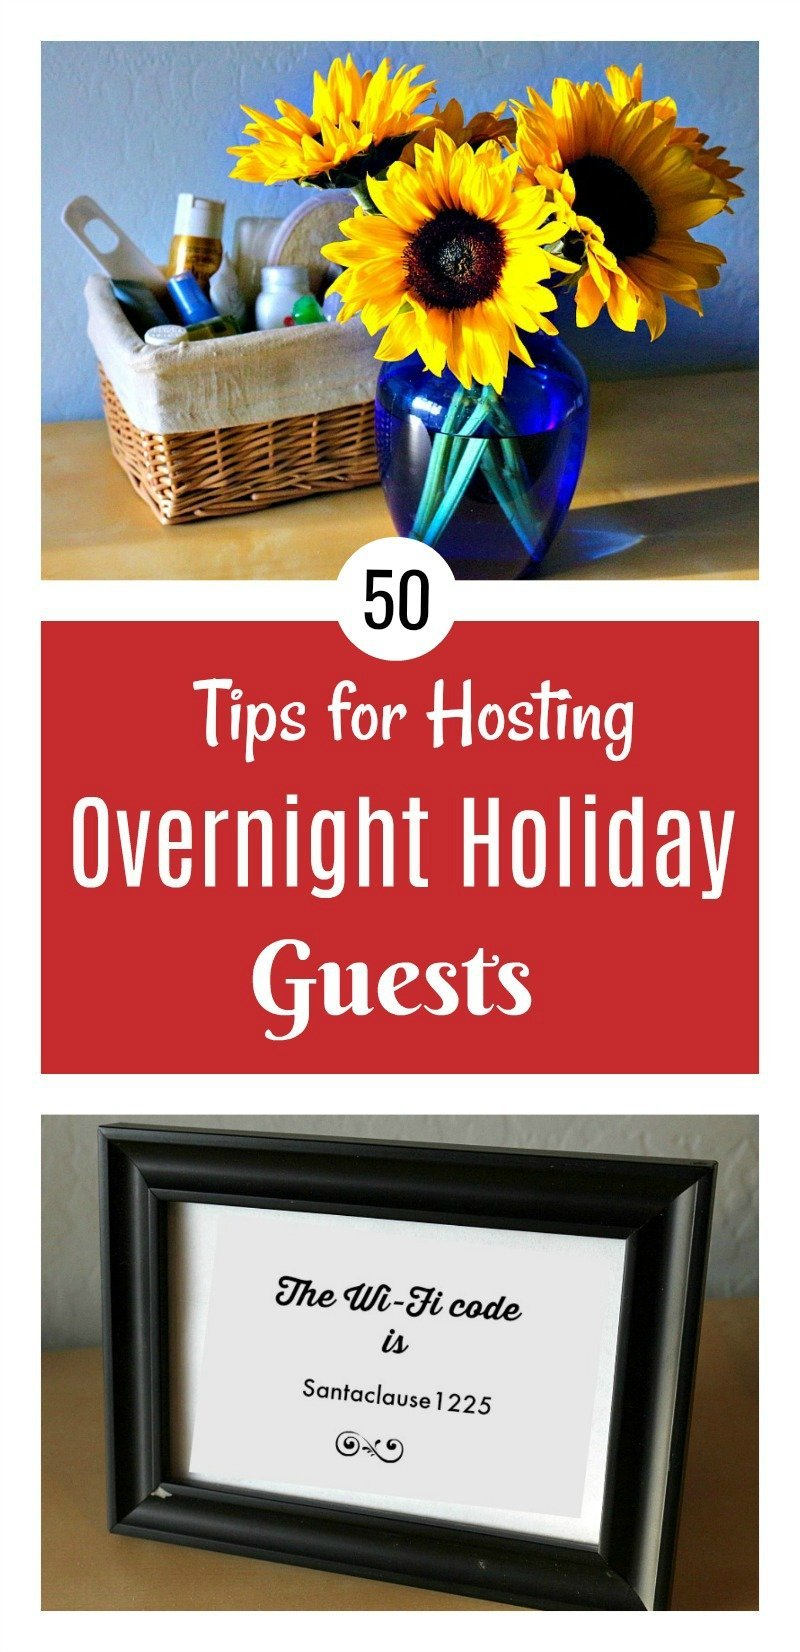 Fifty tips for hosting overnight guests during the holidays, including ideas for the bedroom, kitchen, and bathroom.